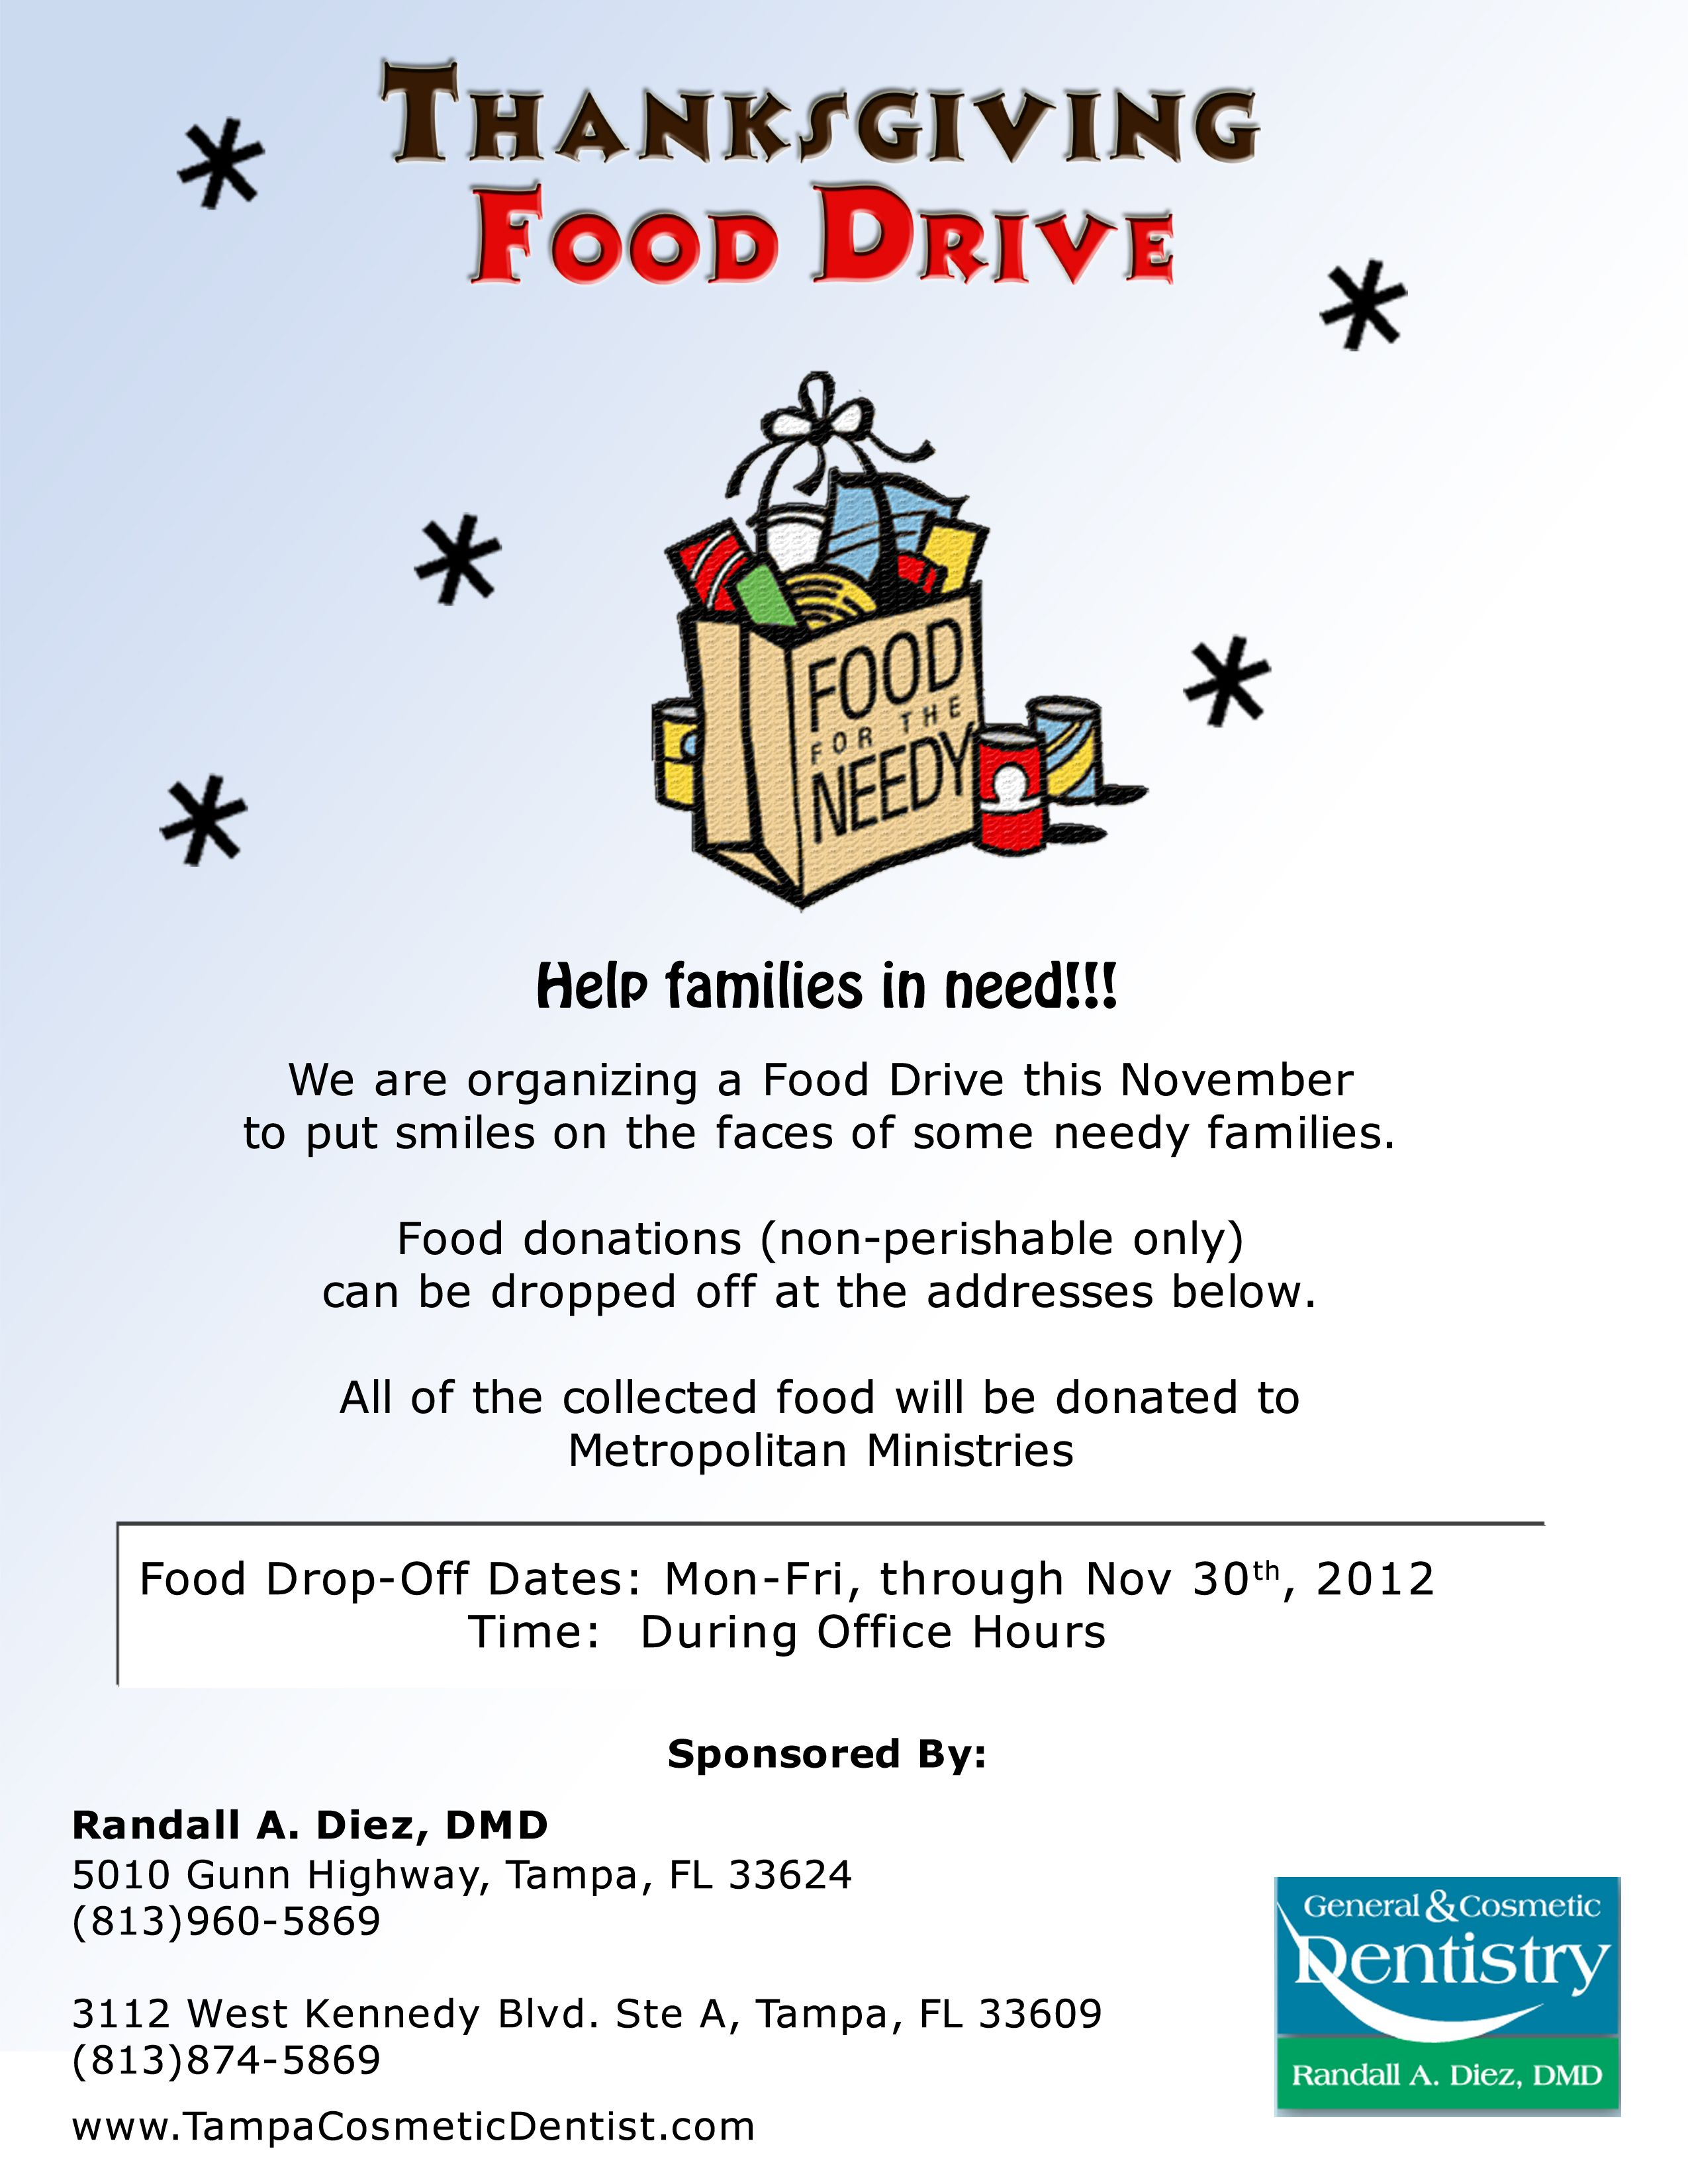 Thanksgiving Food Drive Poster Ideas